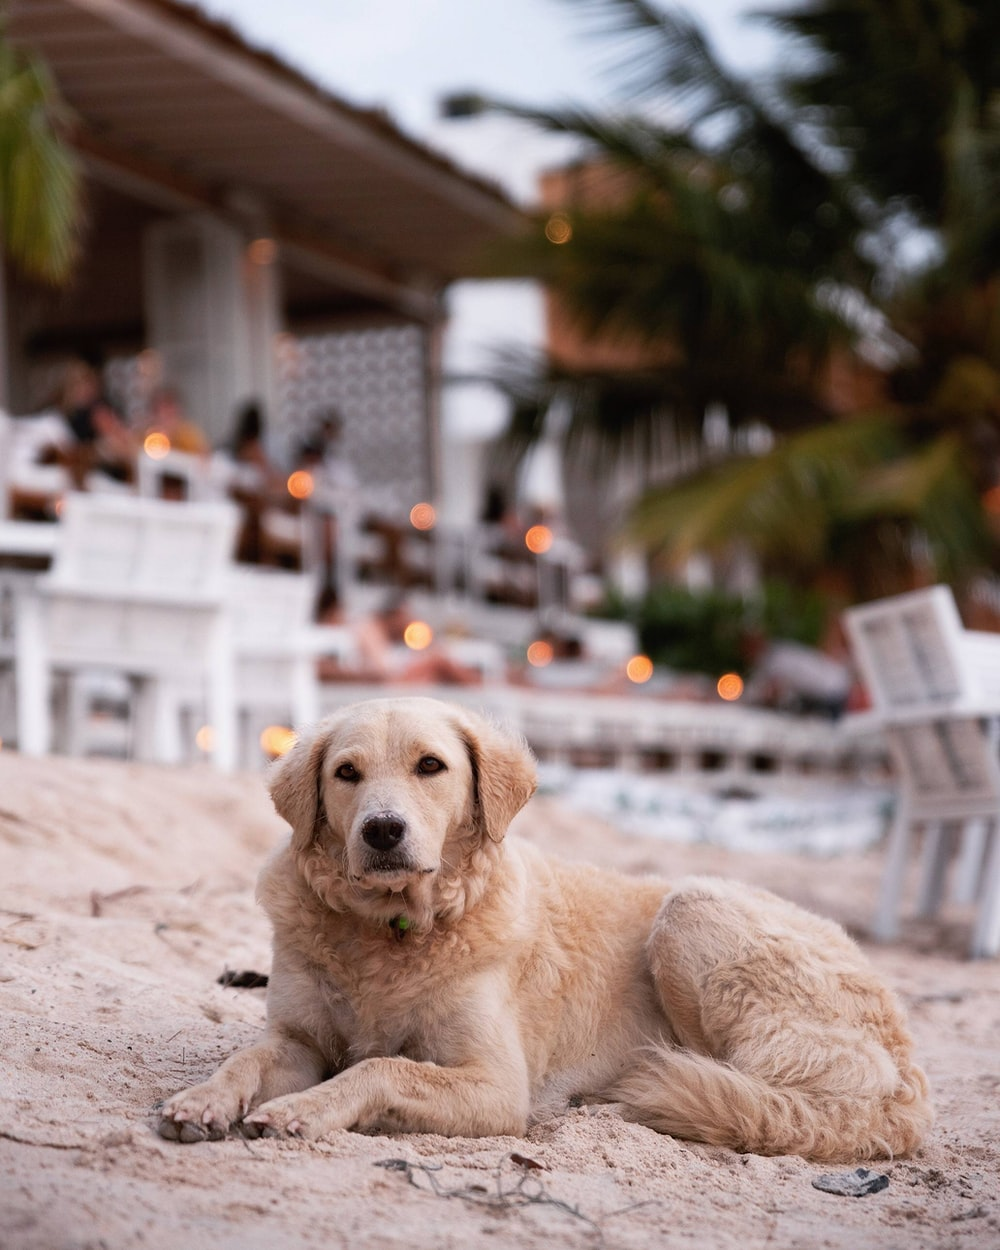 brown coated dog laying on sand